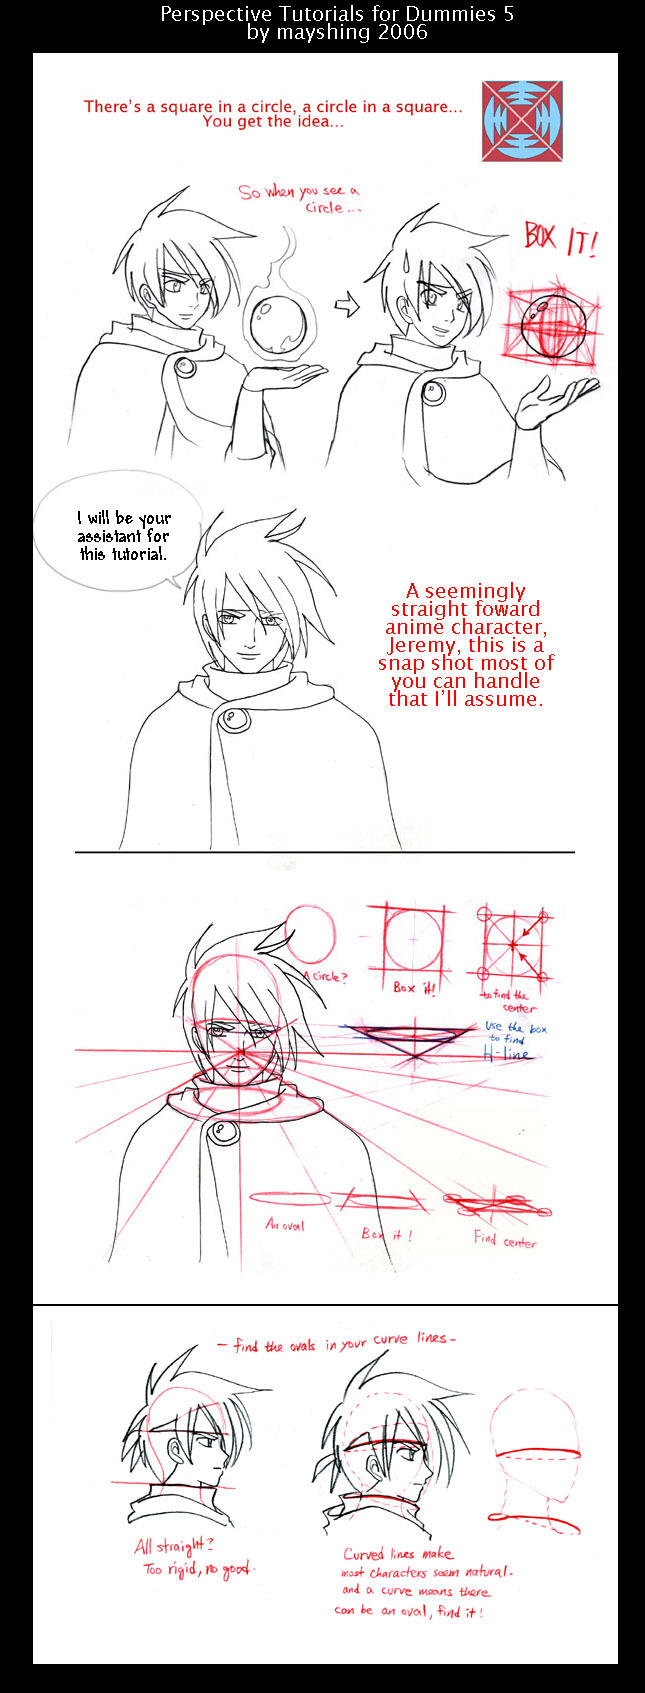 Perspective for dummies 4 by mayshing